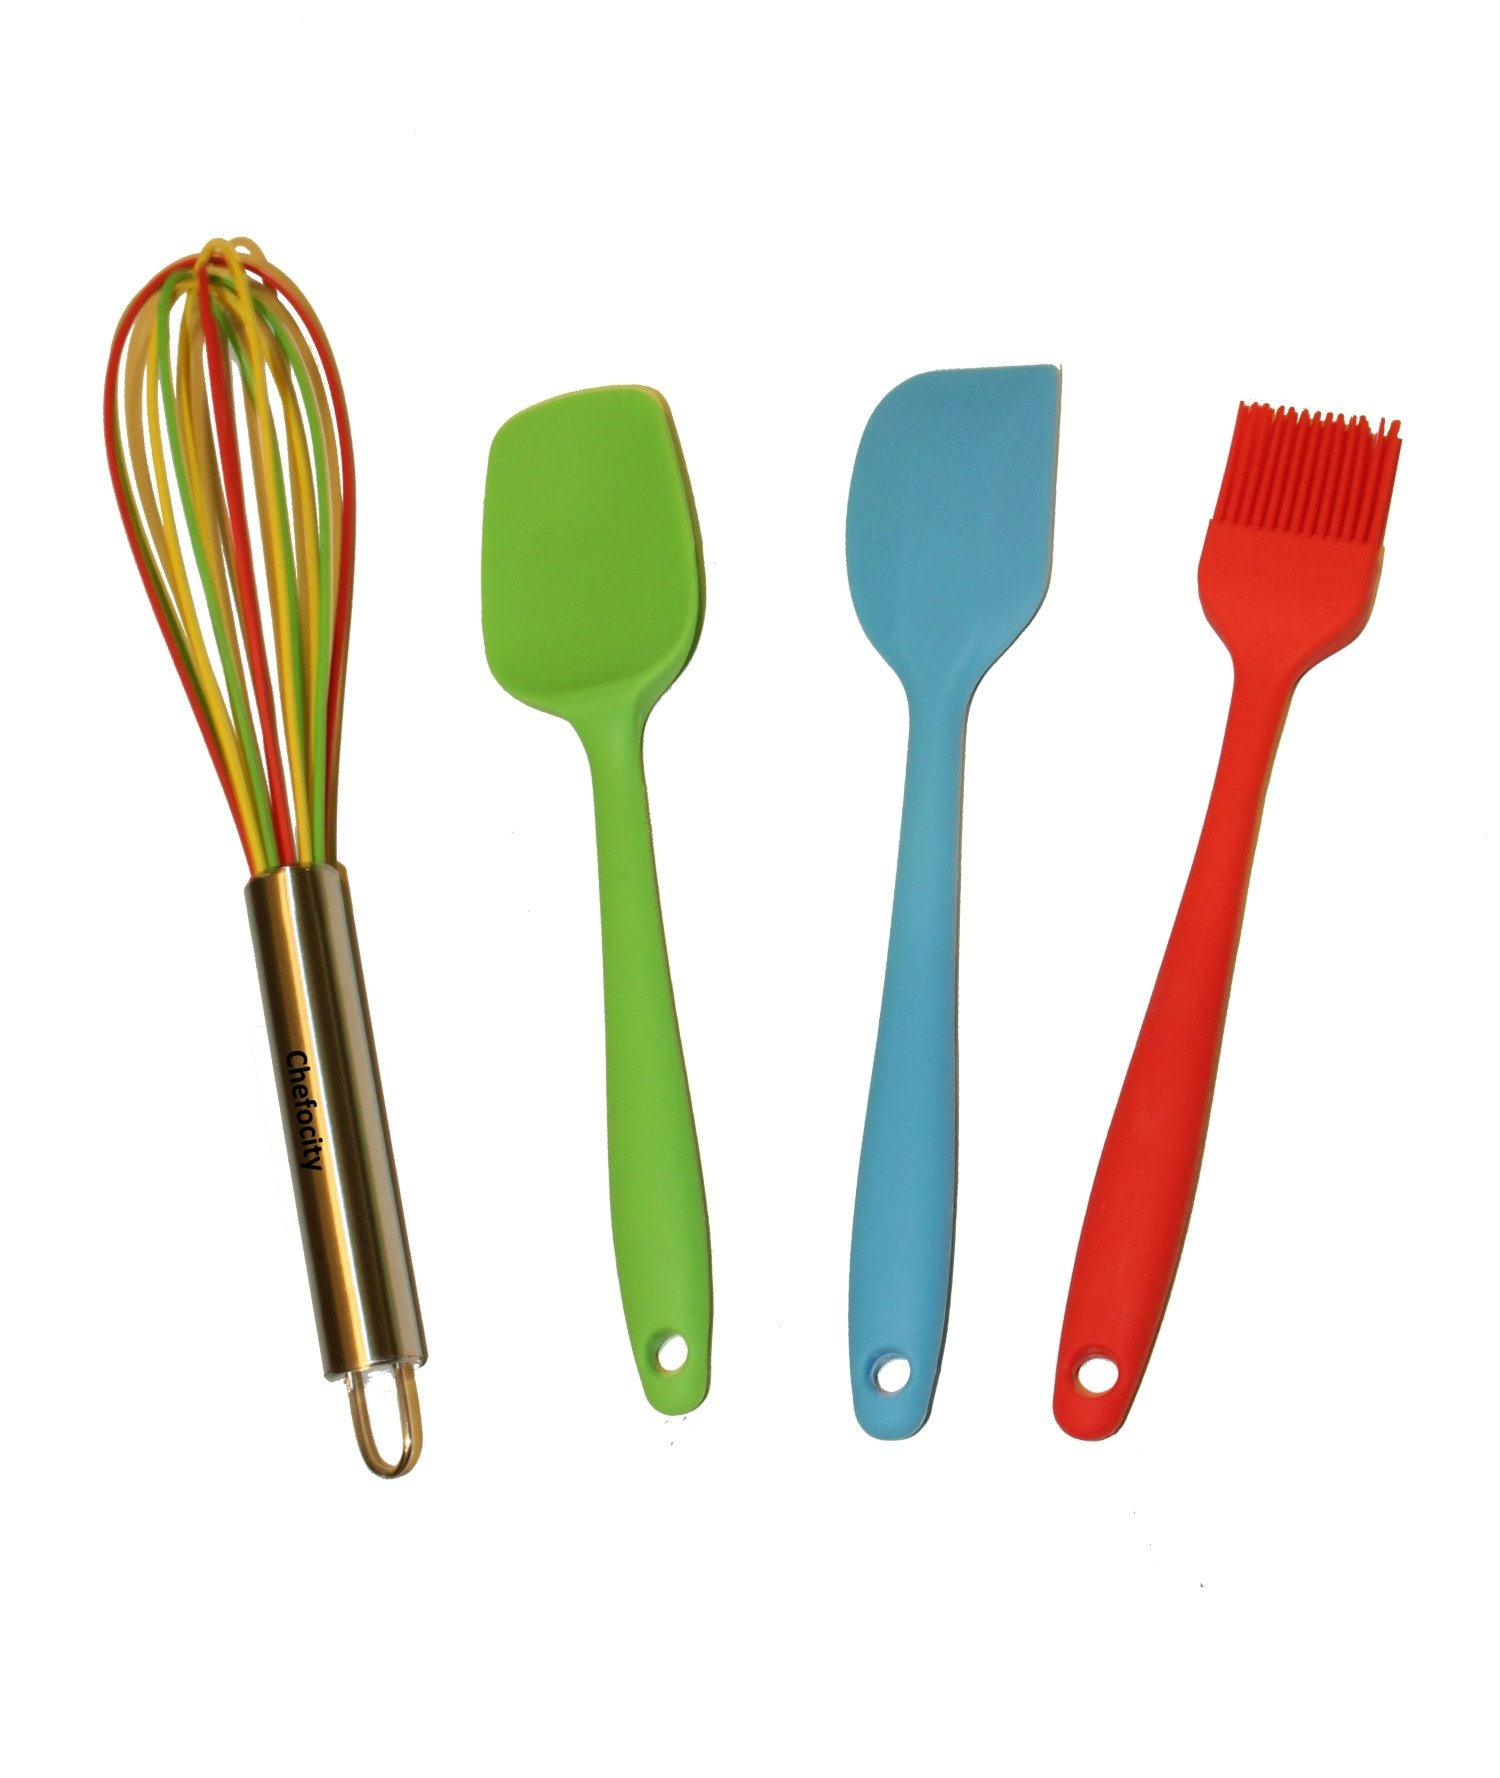 Kids Cooking Utensils - 4 Piece Kids Baking Set - Small Kids Kitchen Accessories - Silicone Whisk, Basting Brush, Scraper, Spatula. Durable Heat Resistant. Chefocity by Chefocity